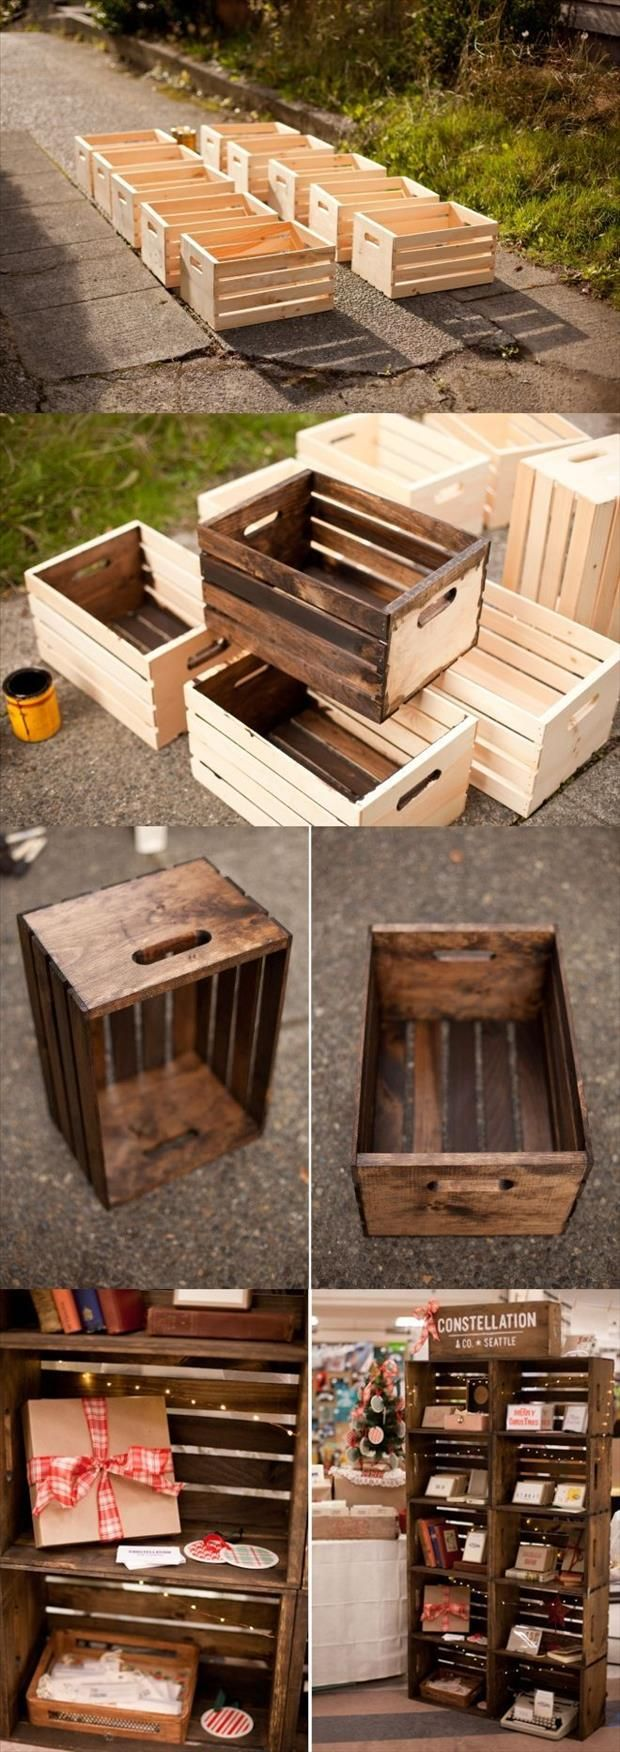 29 Ways to Decorate With Wooden Crates usefuldiyprojects.com decor ideas 8 - 29 Ways To Be Sustainable by Decorating With Wooden Crates